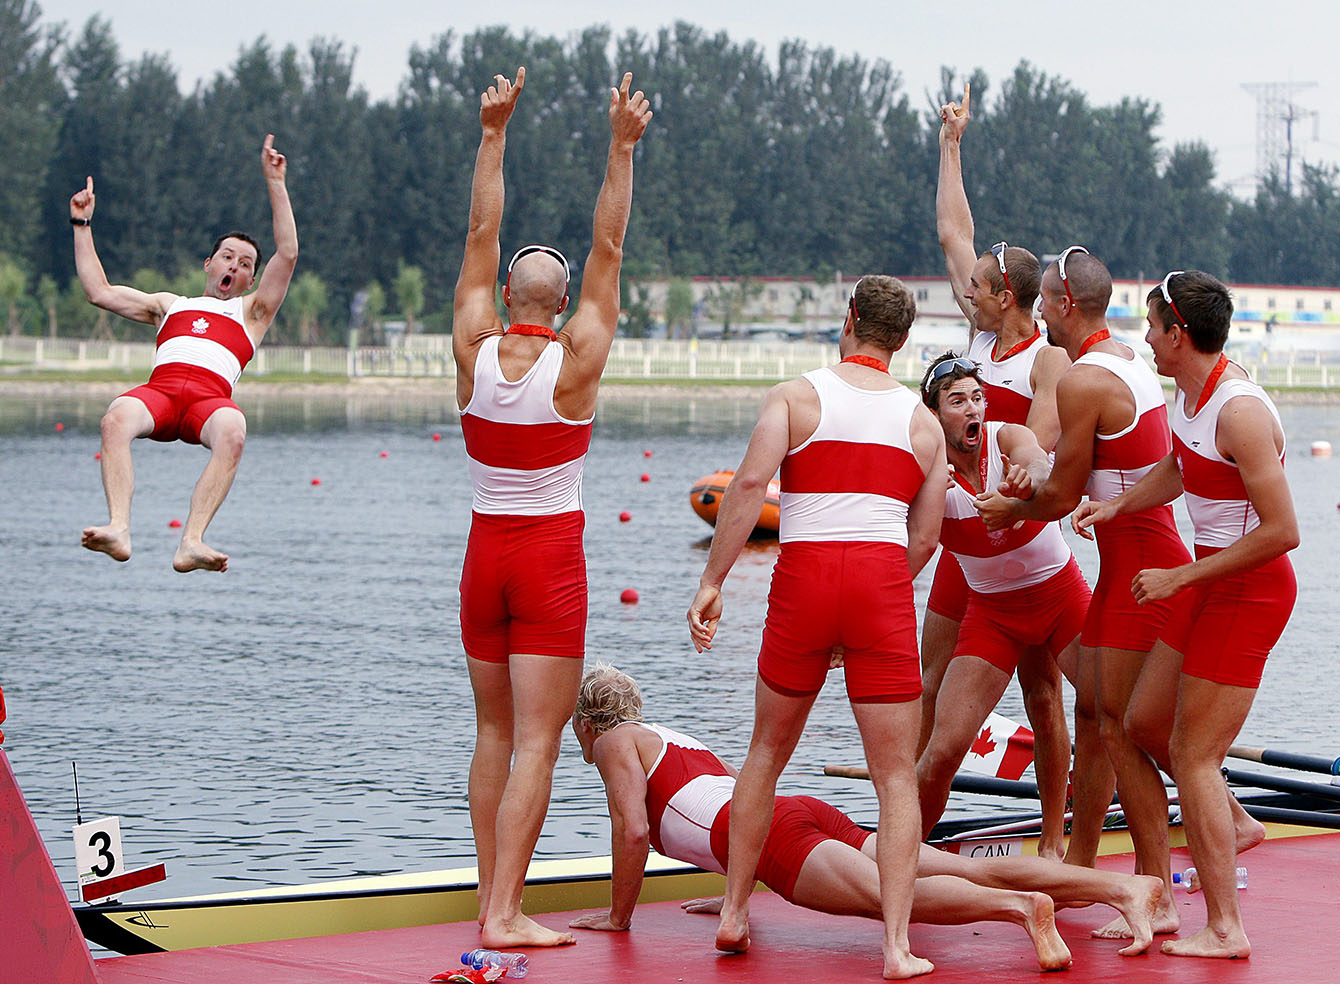 Canadian Men's Eight coxswain Brian Price gets tossed off the dock by his gold medalist team Canadian Men's Eight team at the Shunyi Olympic Rowing-Canoeing Park during the 2008 Beijing Olympic Games in Beijing Aug 17, 2008.  The Canadian Men's eight got the gold while Great Britain took silver and USA bronze. THE CANADIAN PRESS / COC ANDRE FORGET